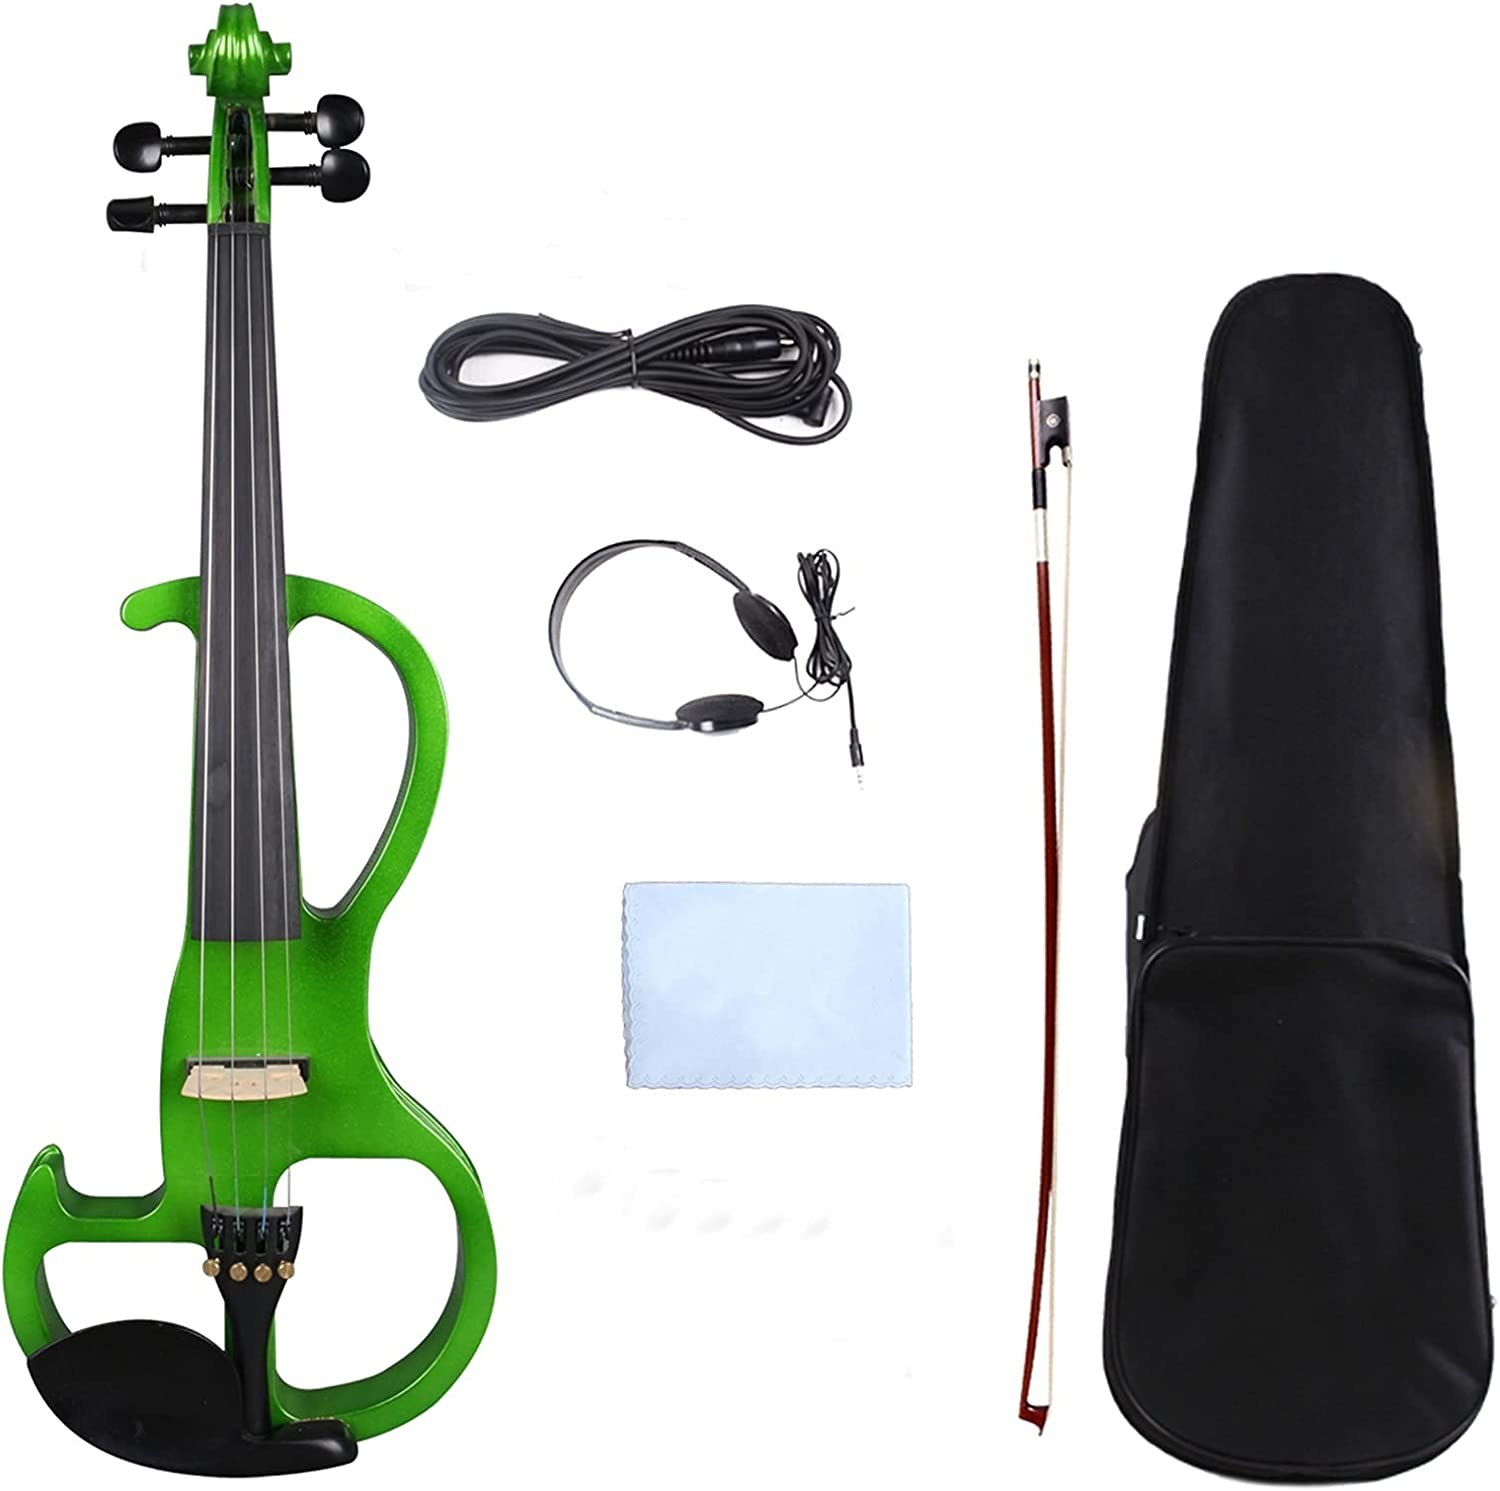 Green 4 Electric Silent Ou Credence Boston Mall Case+Bow+Cable Violin Wooden